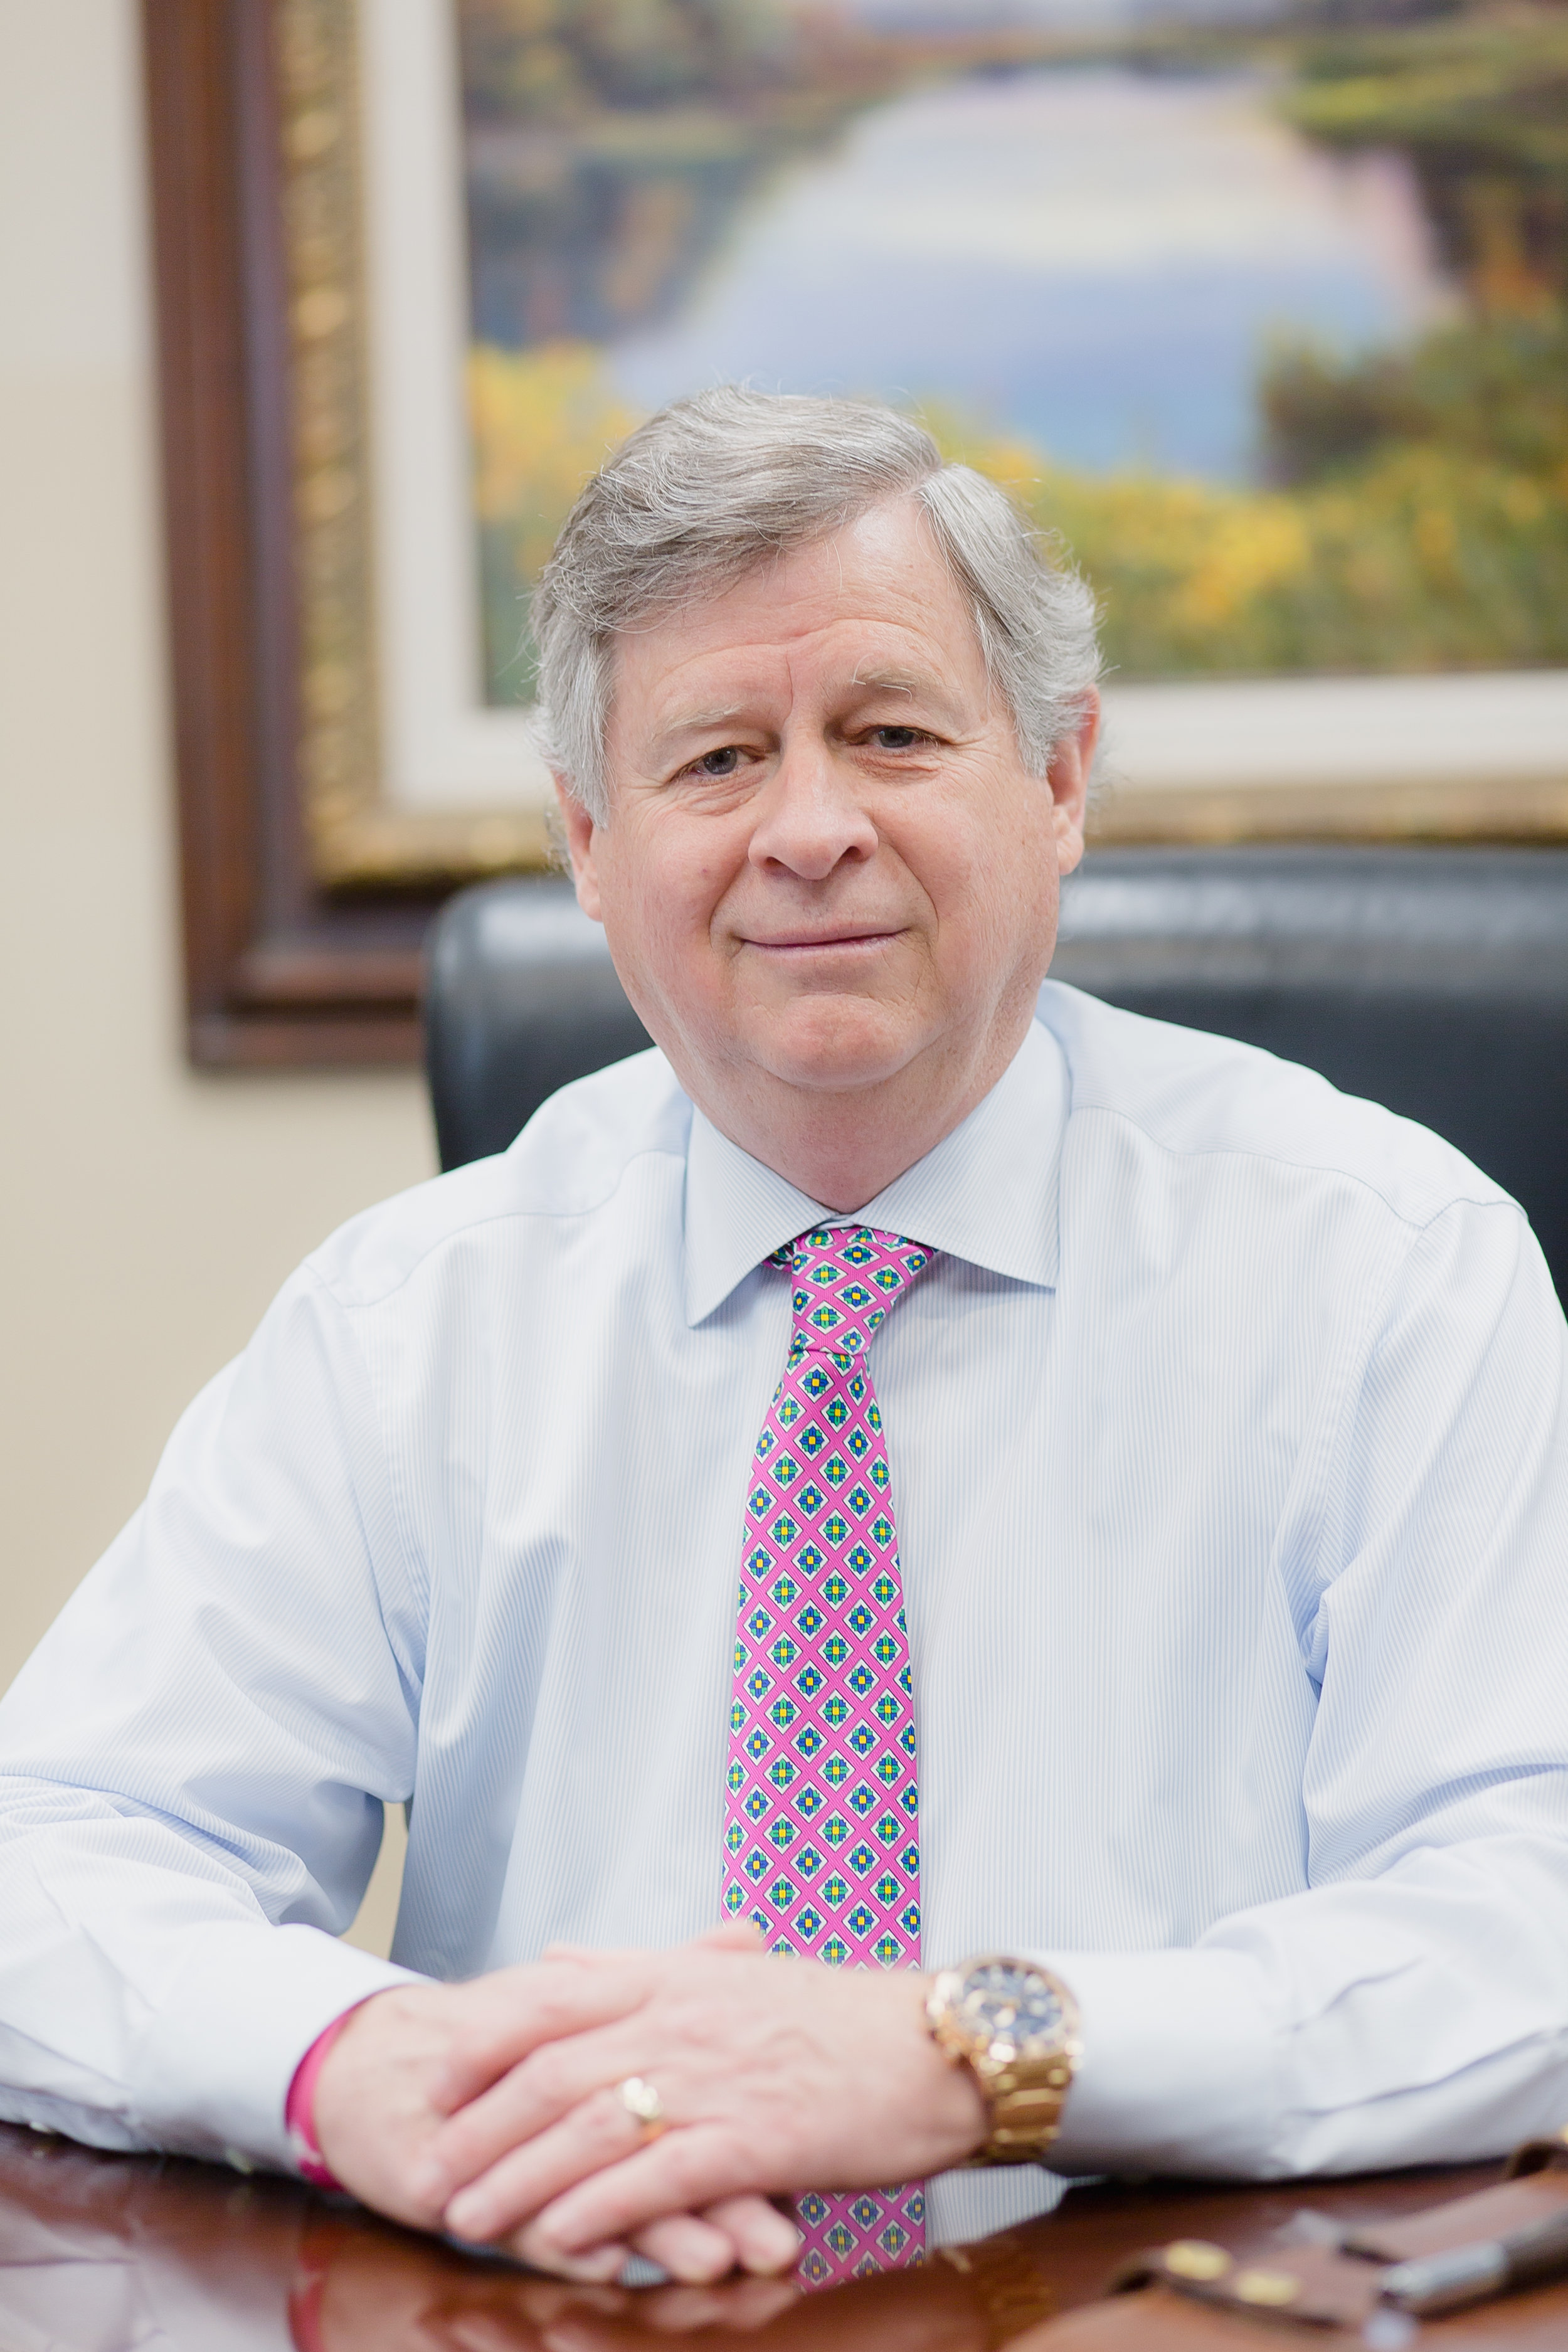 Bill Kenny, Founder and President of Kenny Pipe & Supply, Inc.